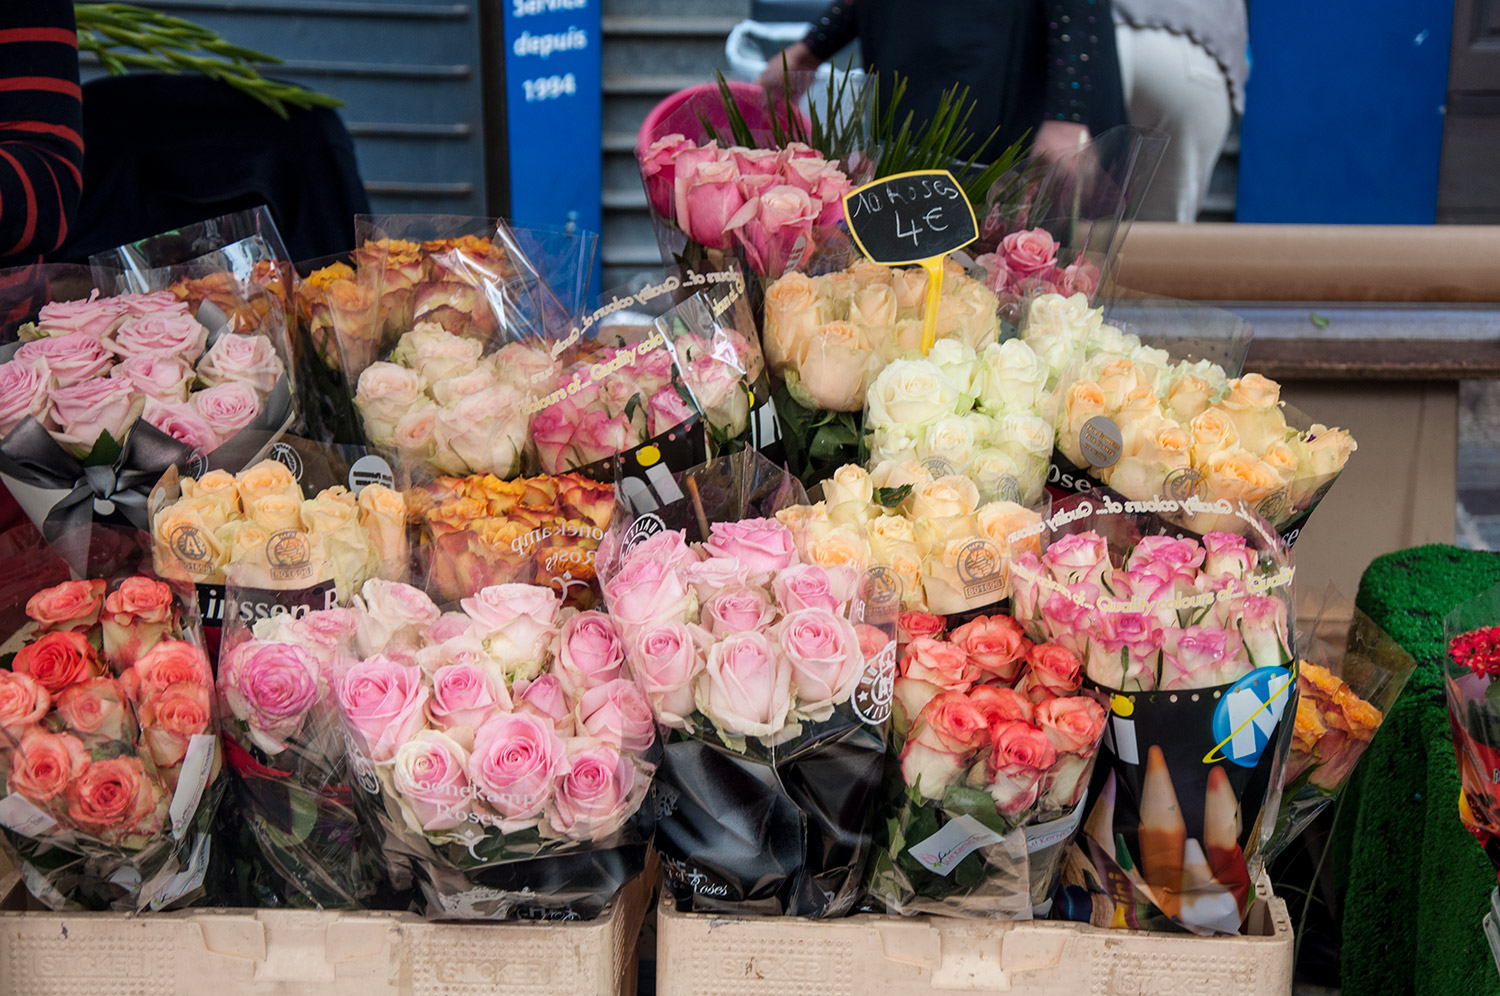 Flowers at Marche d'Aligre